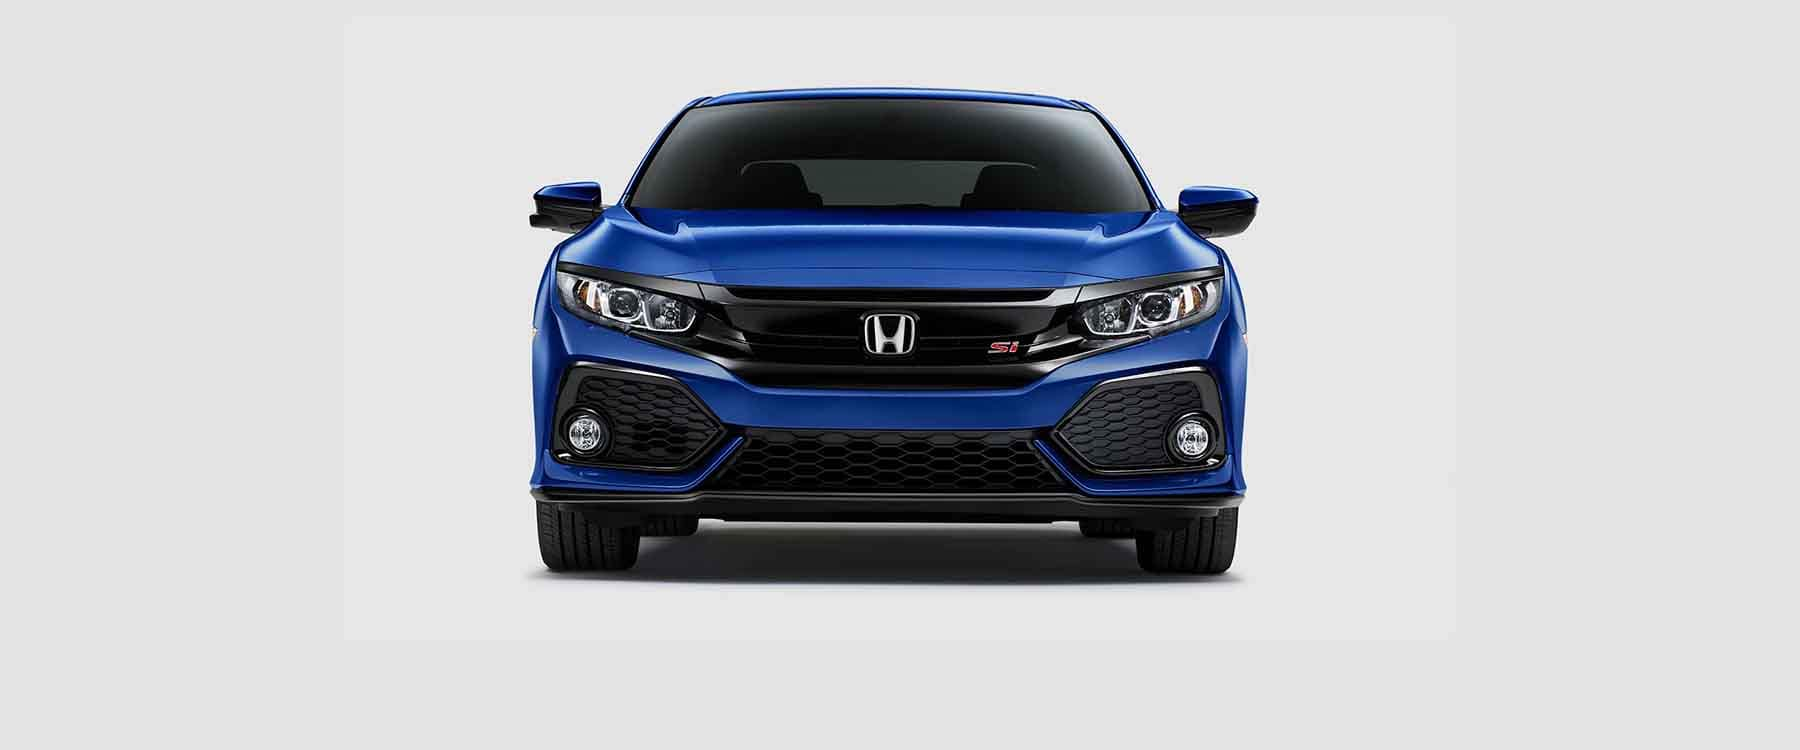 Front end view of 2018 Honda Civic Si Sedan